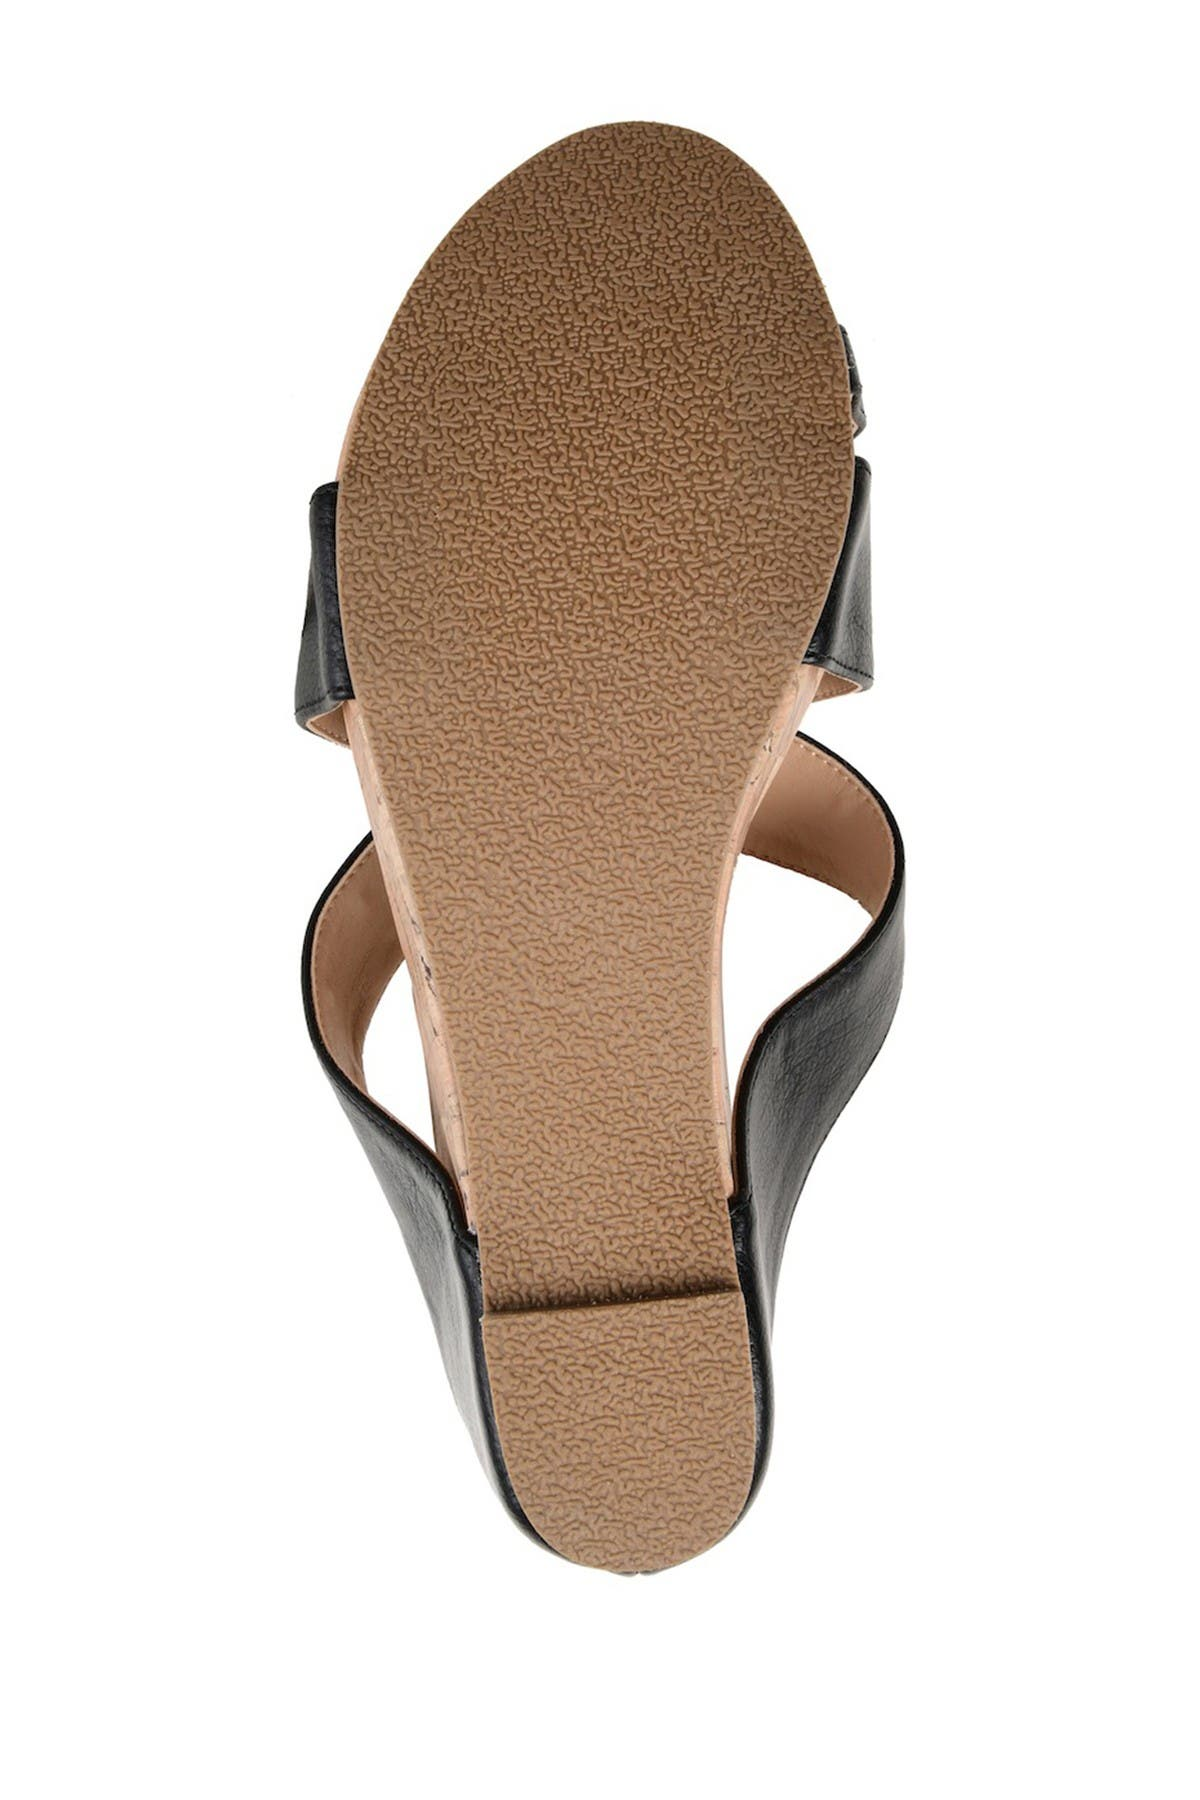 Image of JOURNEE Collection Rayna Wedge Sandal